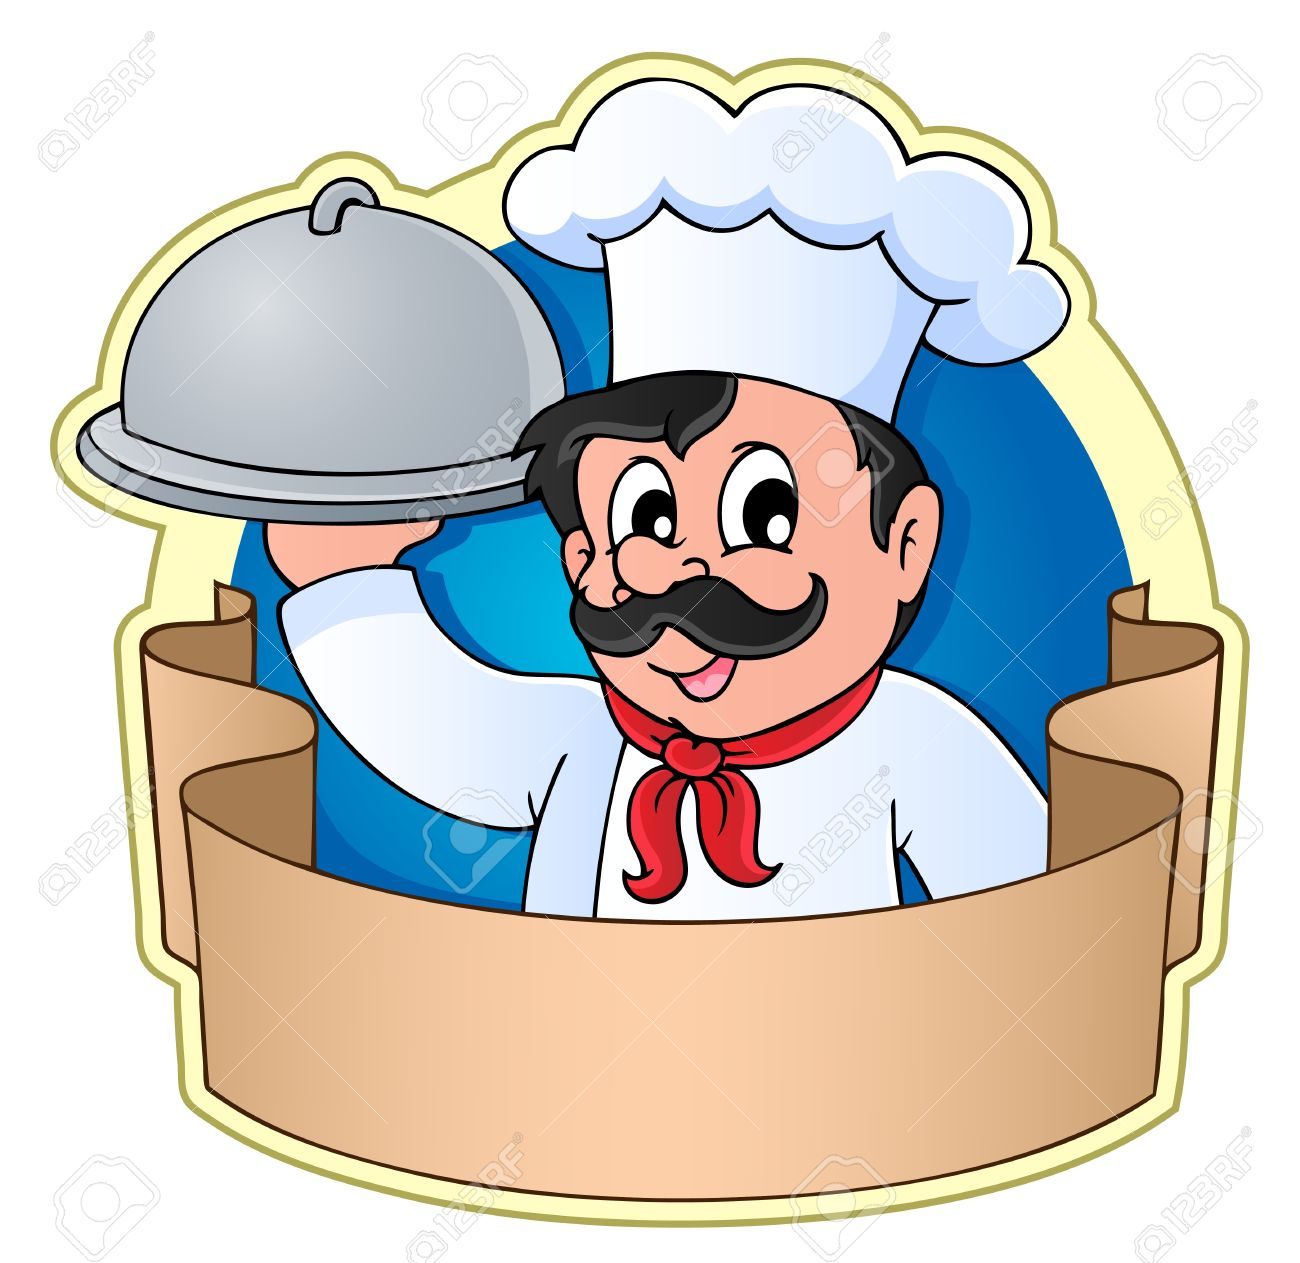 Catering chef clipart graphic royalty free library Chef Theme Image 5 - Vector Illustration Royalty Free Cliparts ... graphic royalty free library